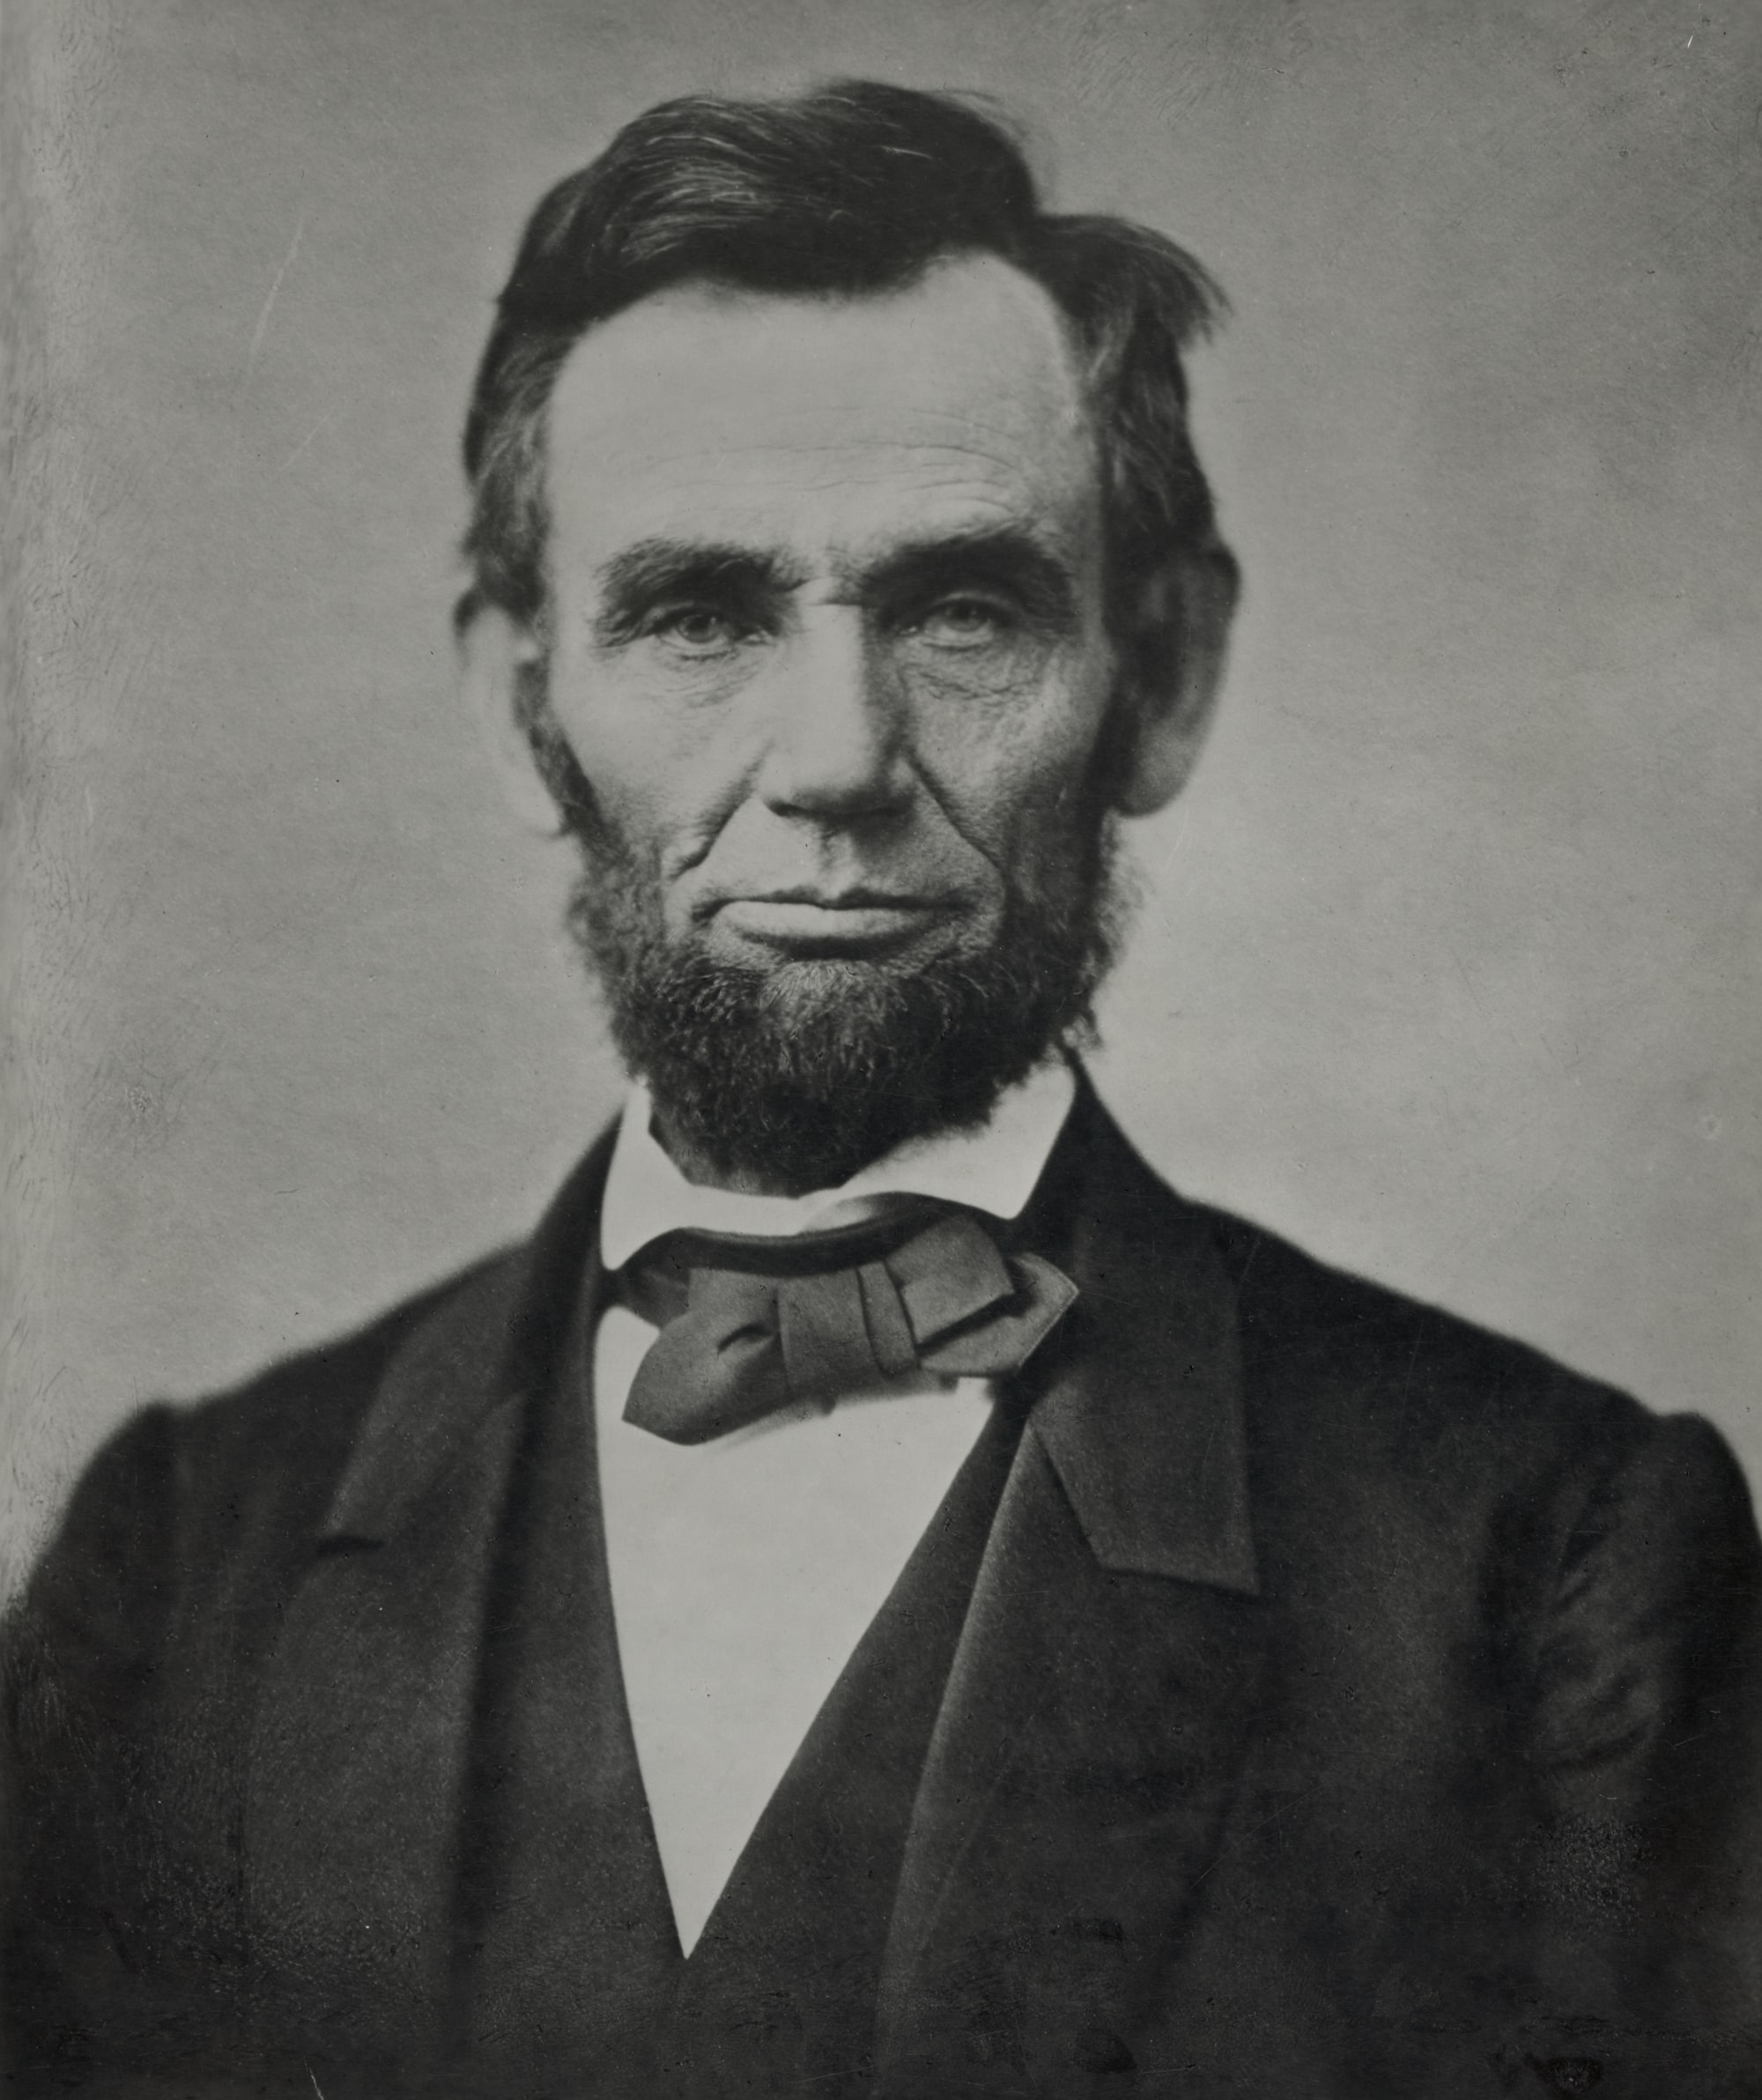 [Abraham Lincoln, head-and-shoulders portrait, facing front]. Photograph by photographer Alexander Gardner, [photograph taken 1863; printed later and c1900]. From the Presidential File Collection. Library of Congress Prints & Photographs Division.  https://www.loc.gov/item/96522529/